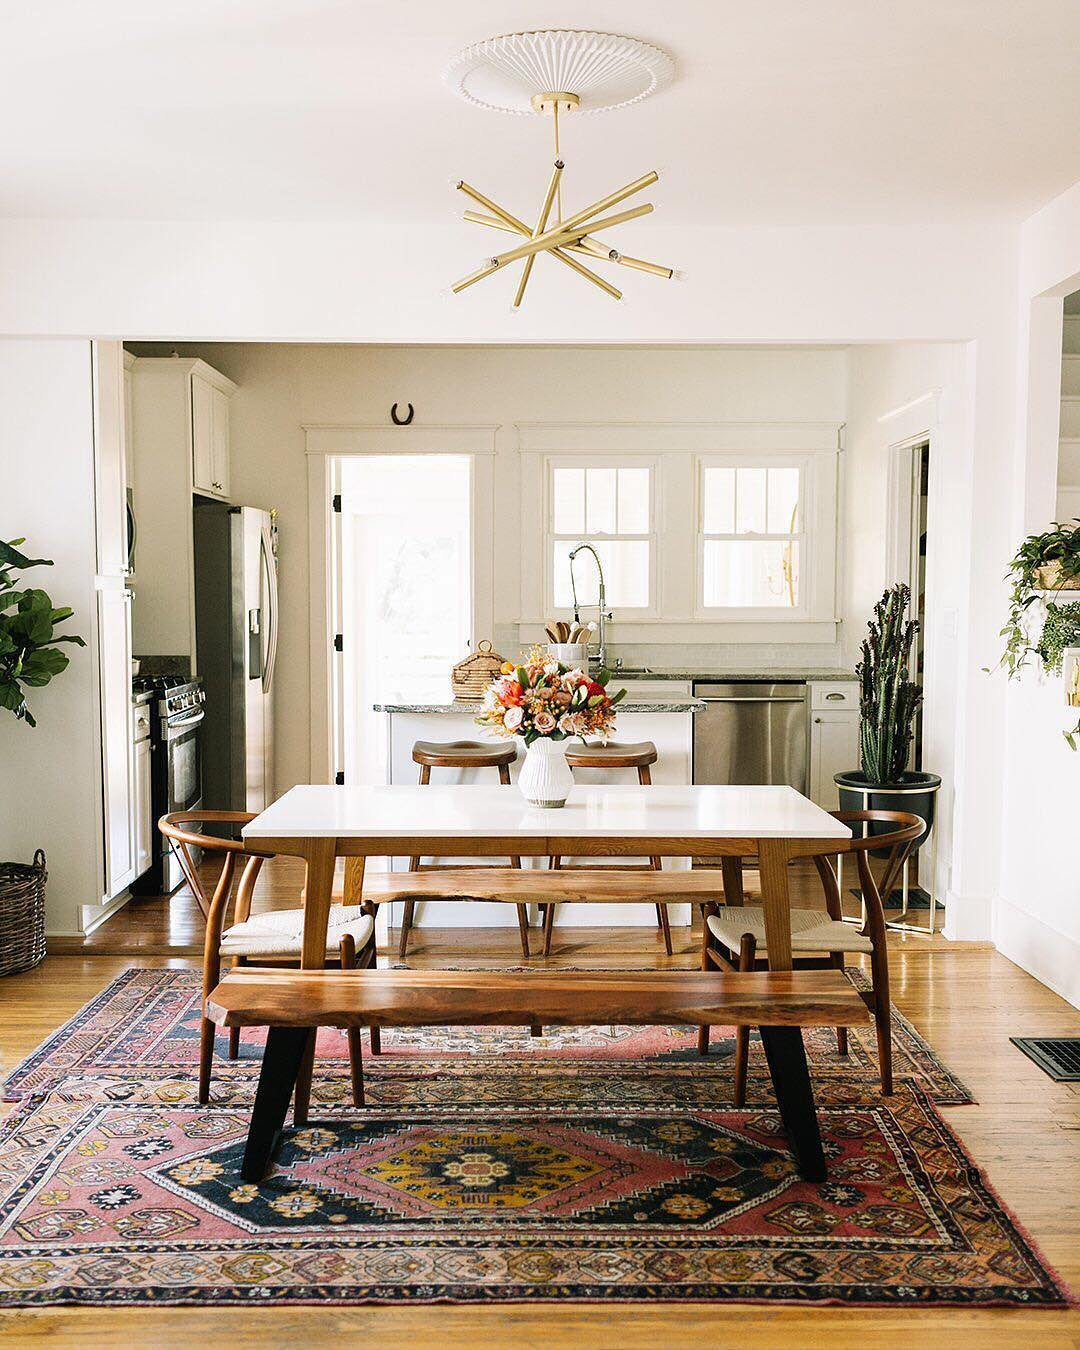 Small Country Dining Room Ideas: We Partnered With @abeautifulmess To Recreate Country Star @spaceykacey's Dining Room- And It